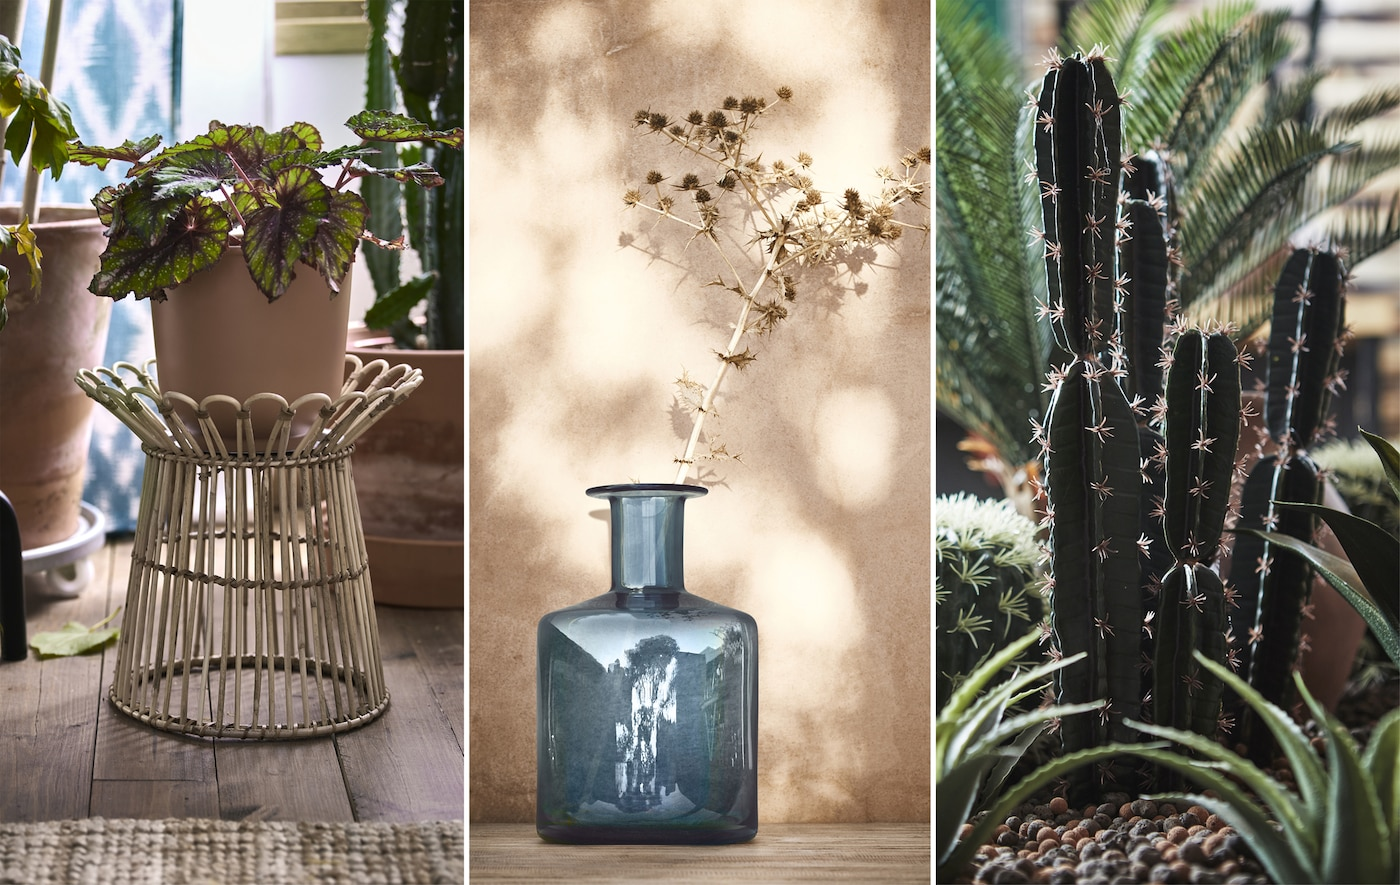 A collage of a rattan plant stand, a blue vase, and an artificial cactus.